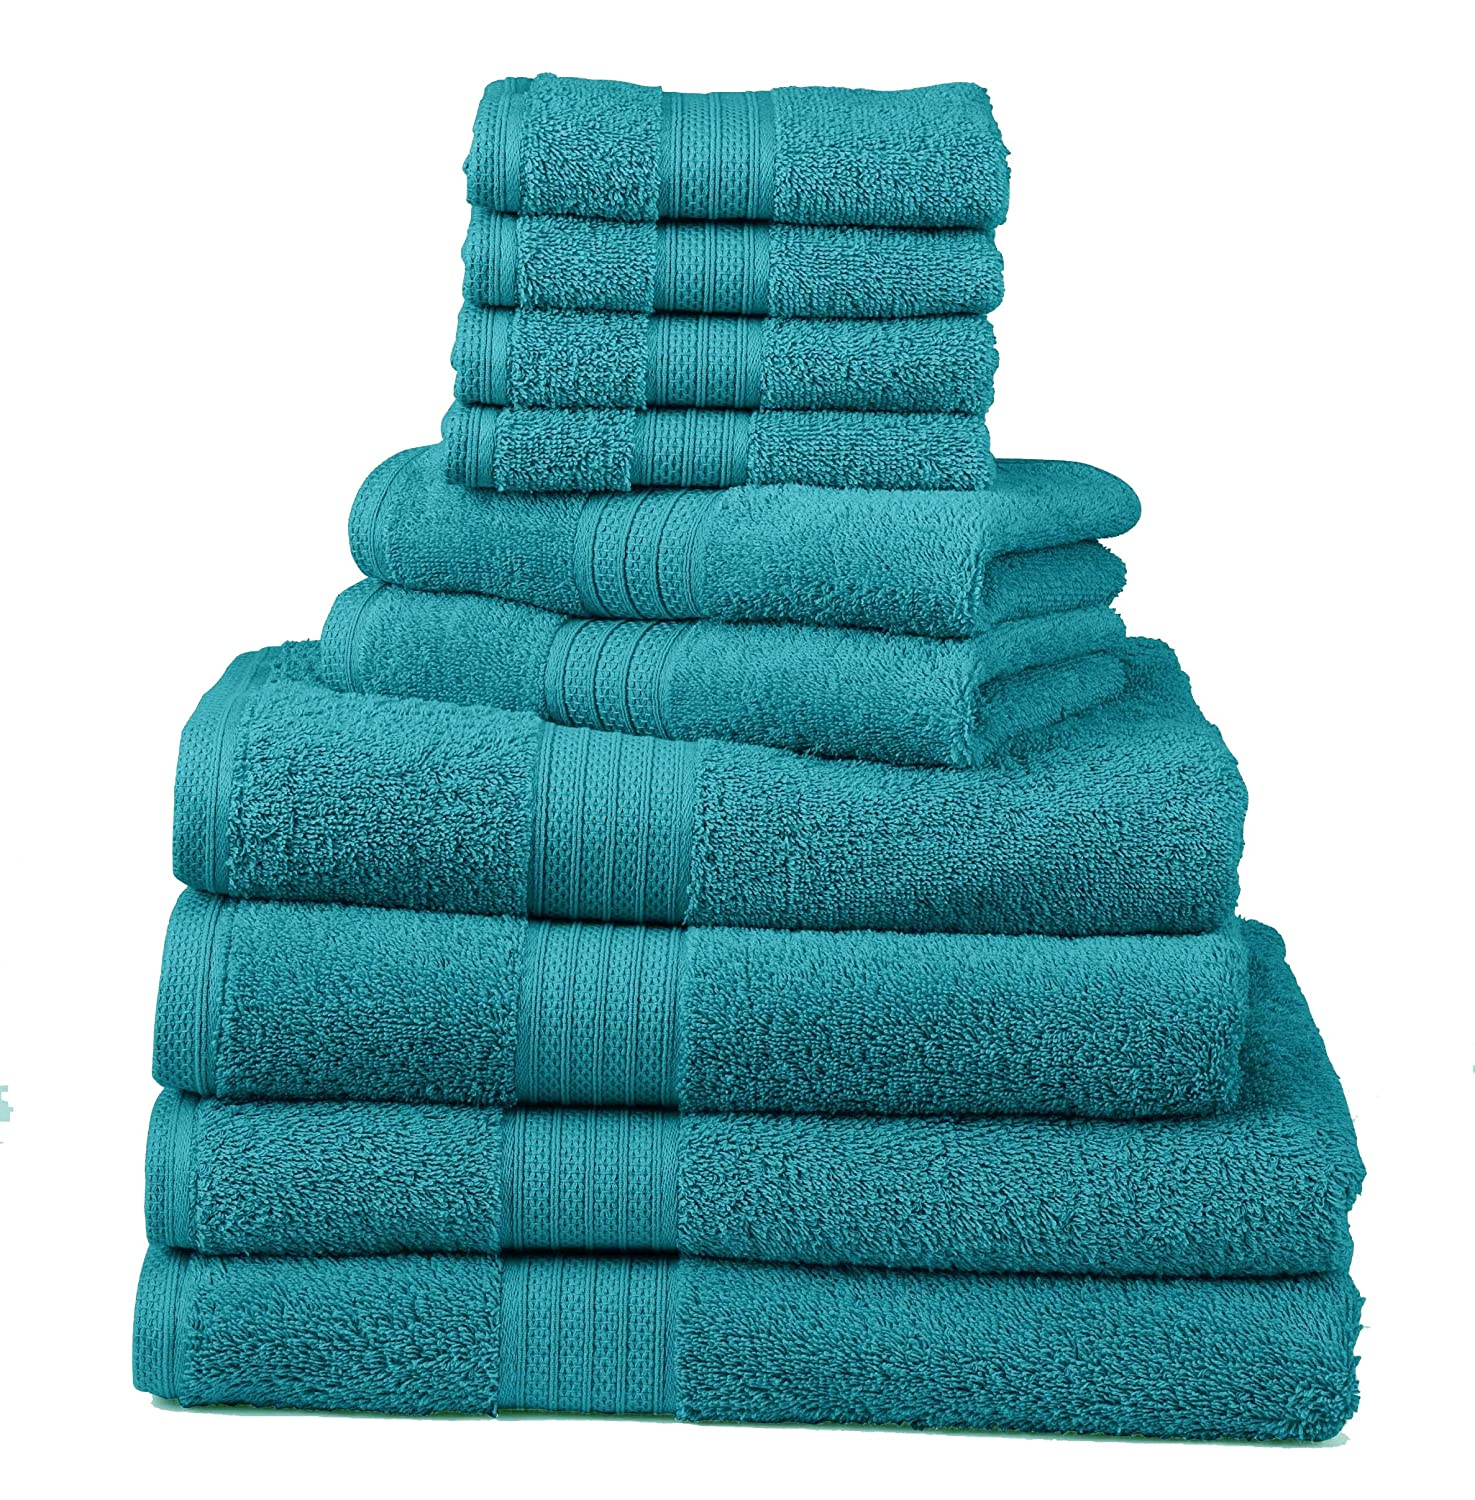 Business Towels As Gifts